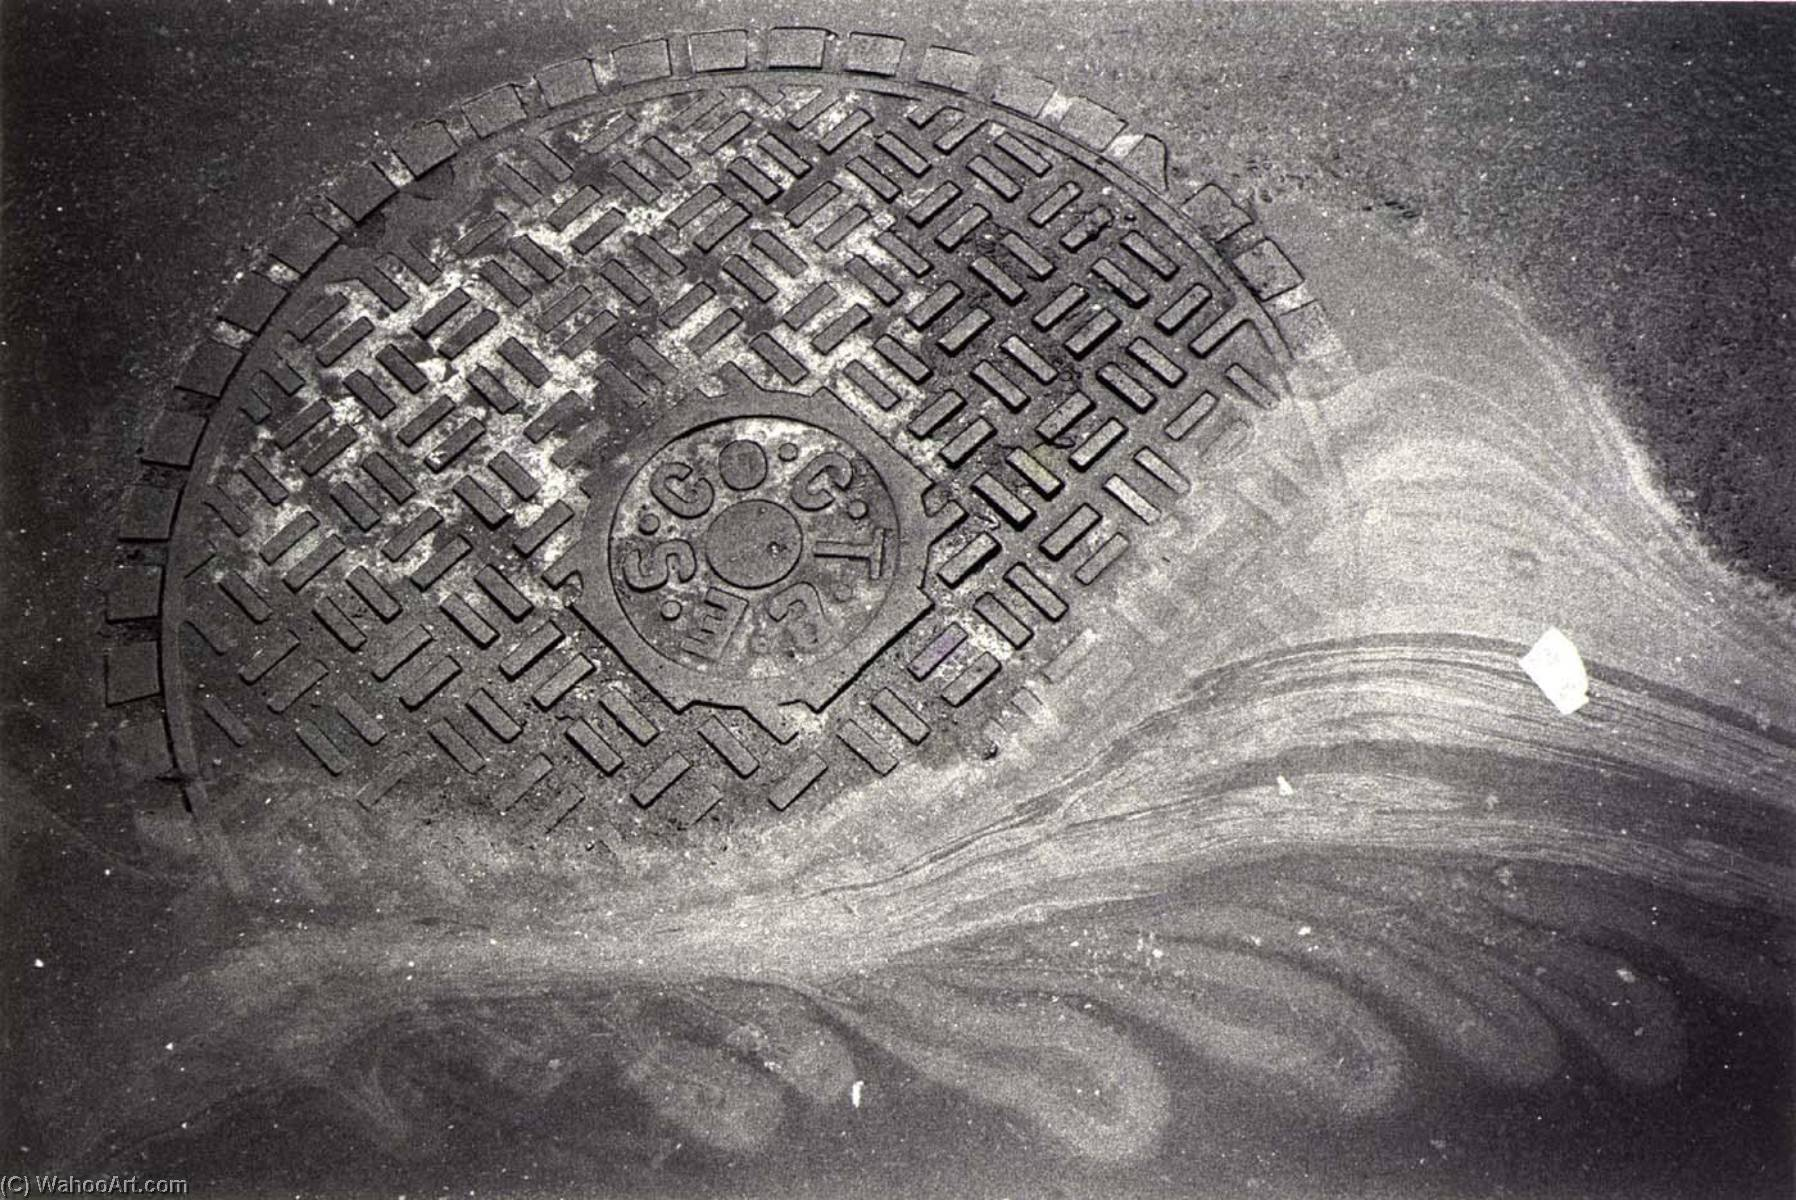 Untitled, from the series Manholes, Print by Joseph Dankowski